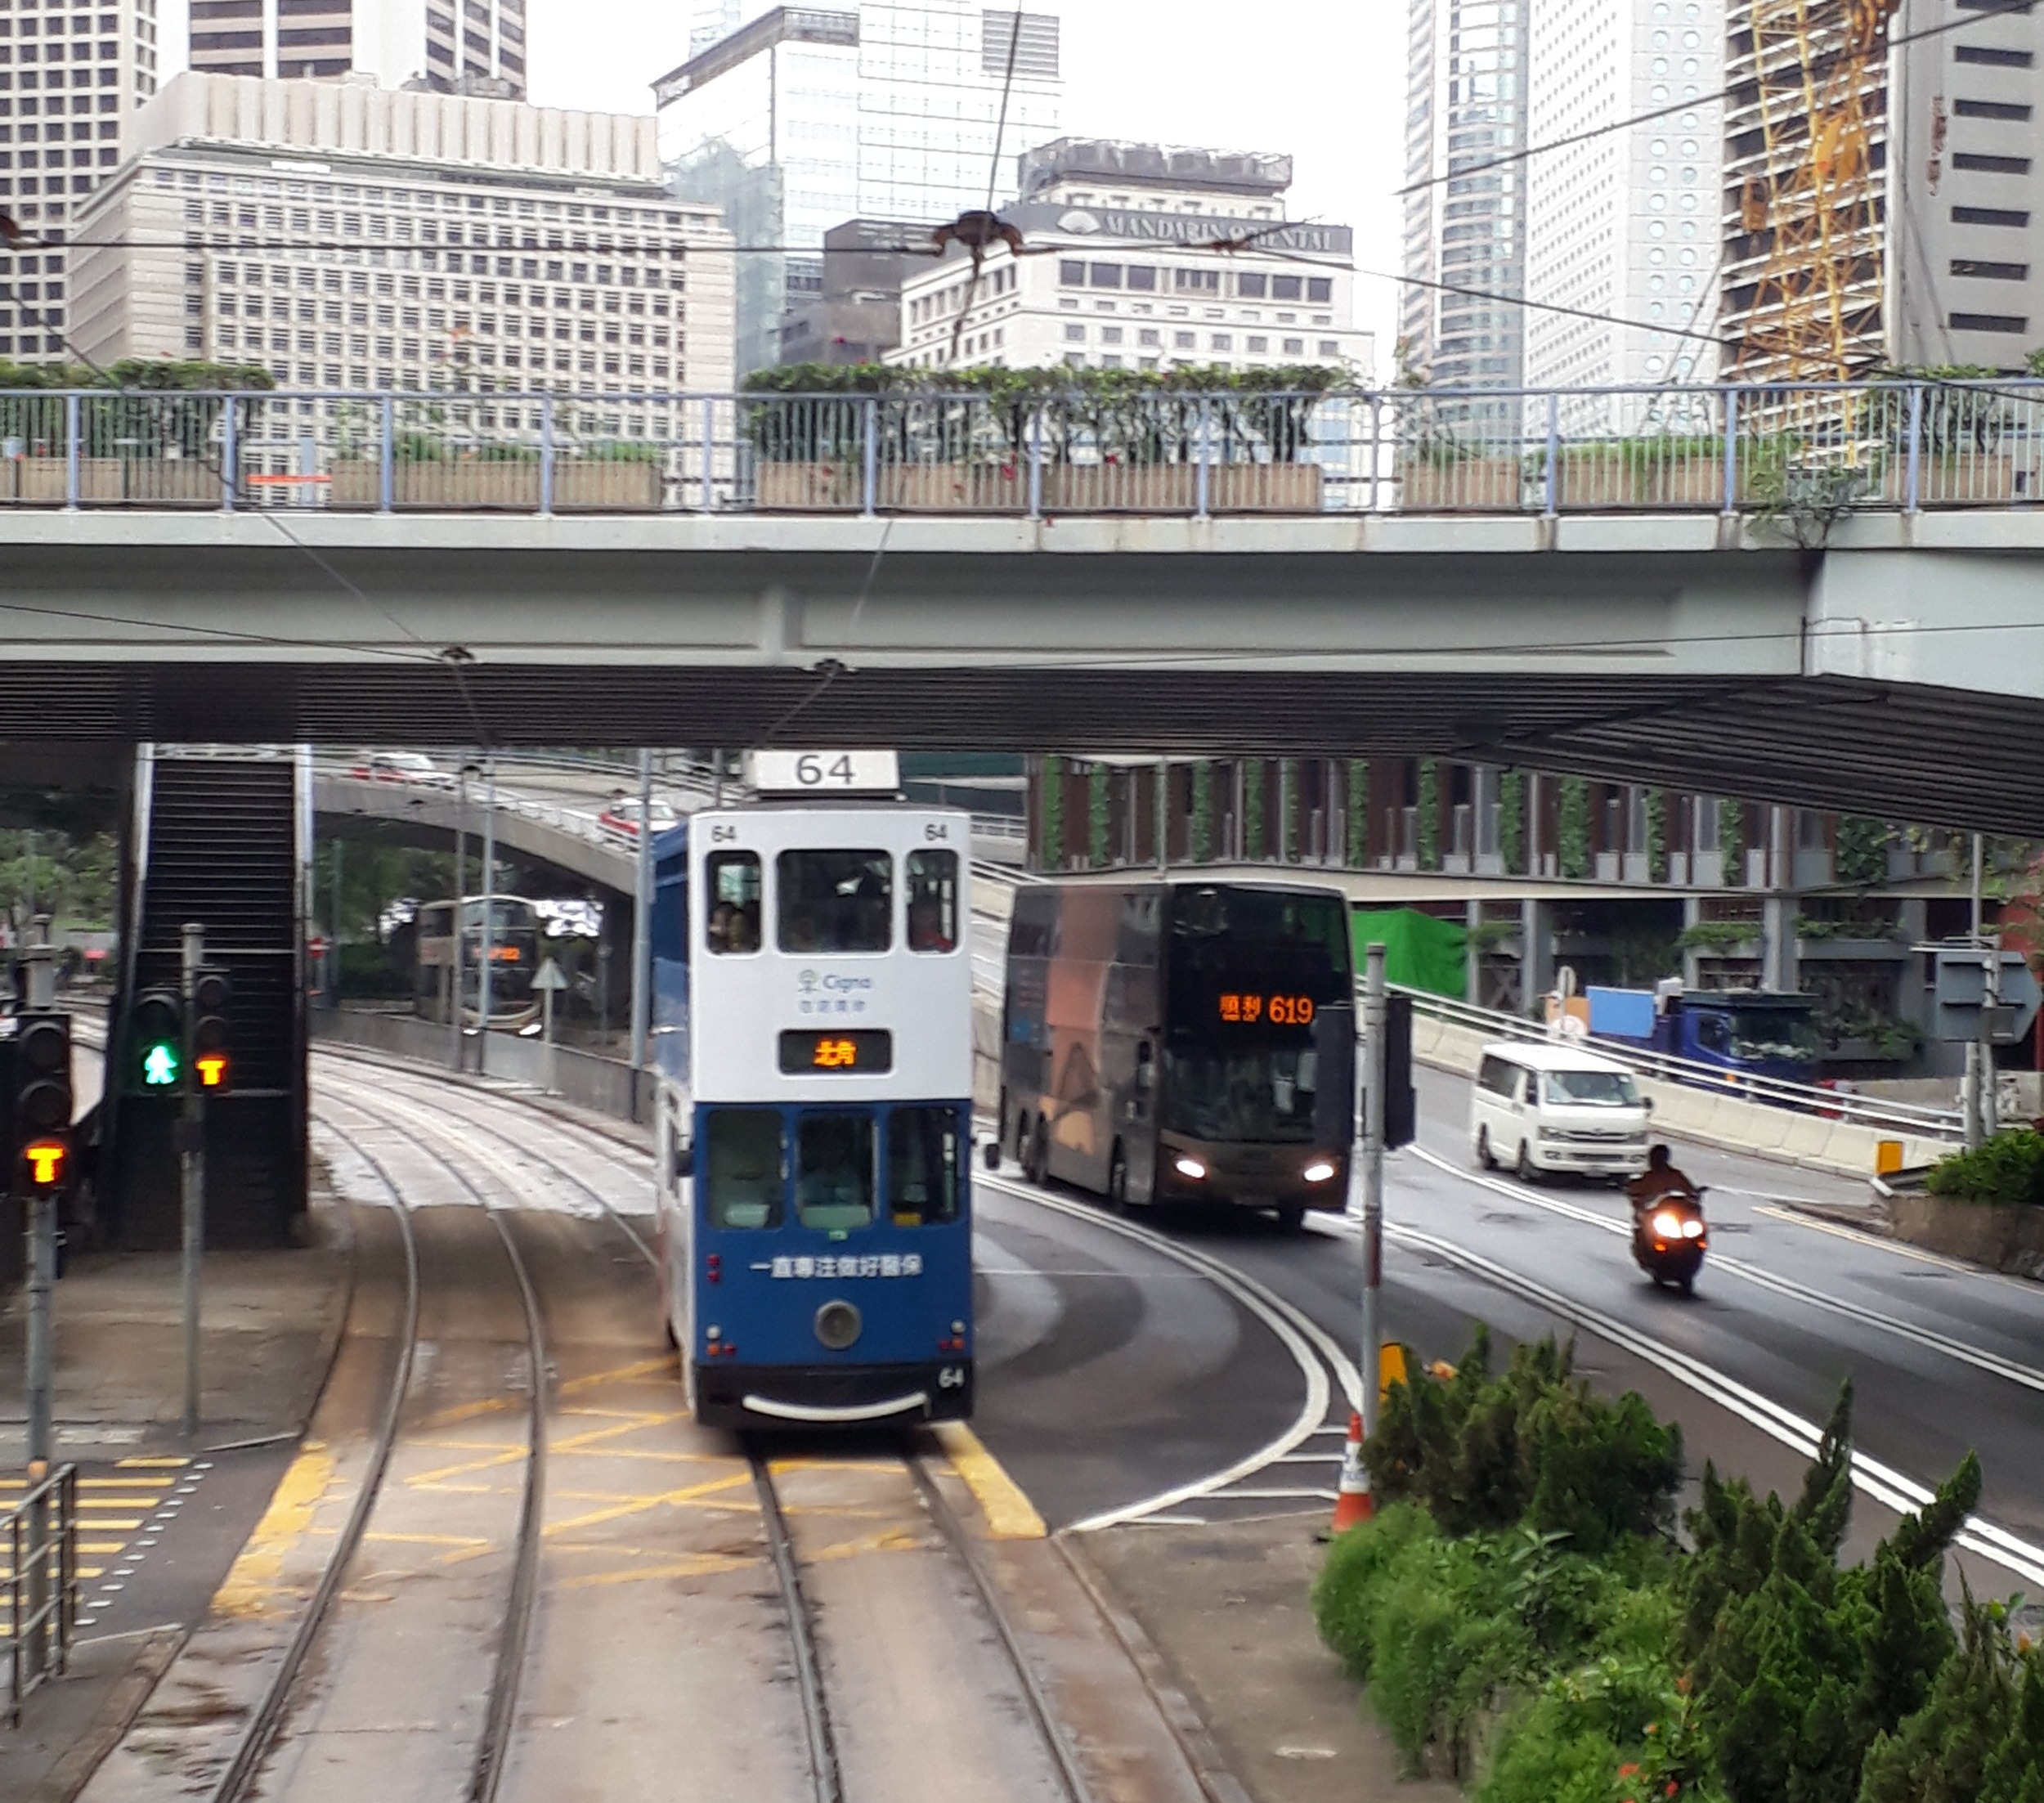 There are lots of ways to travel around Hong Kong!